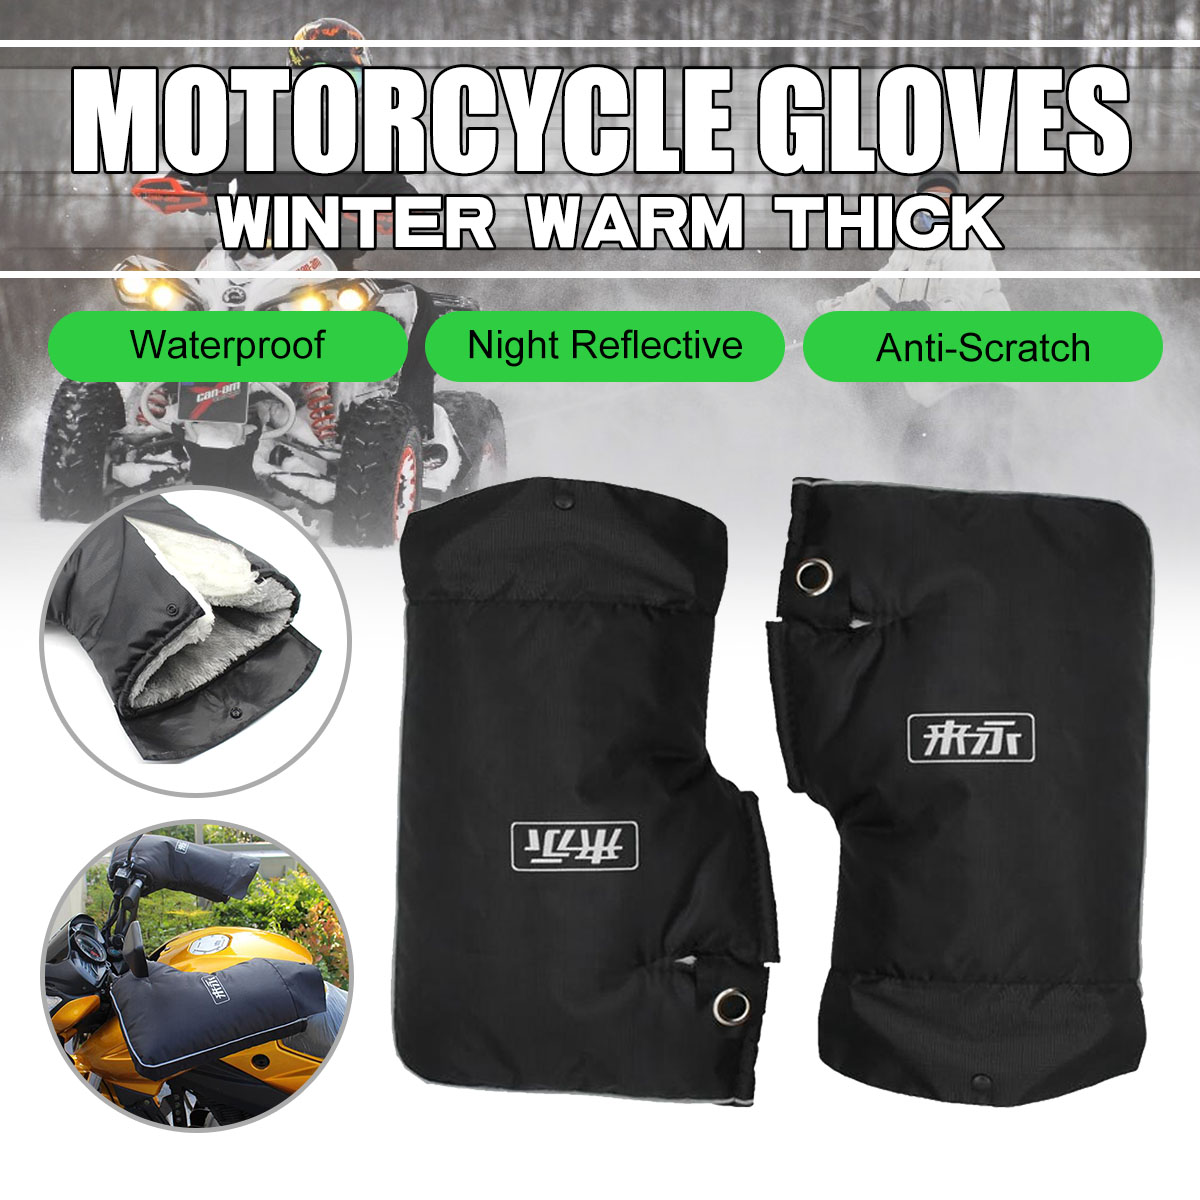 Pair Winter Warm Thick Motorcycle Handlebar Gloves Windproof Waterproof Warm Motorbike Tricycle Handle Bar Hand Cover Muffs